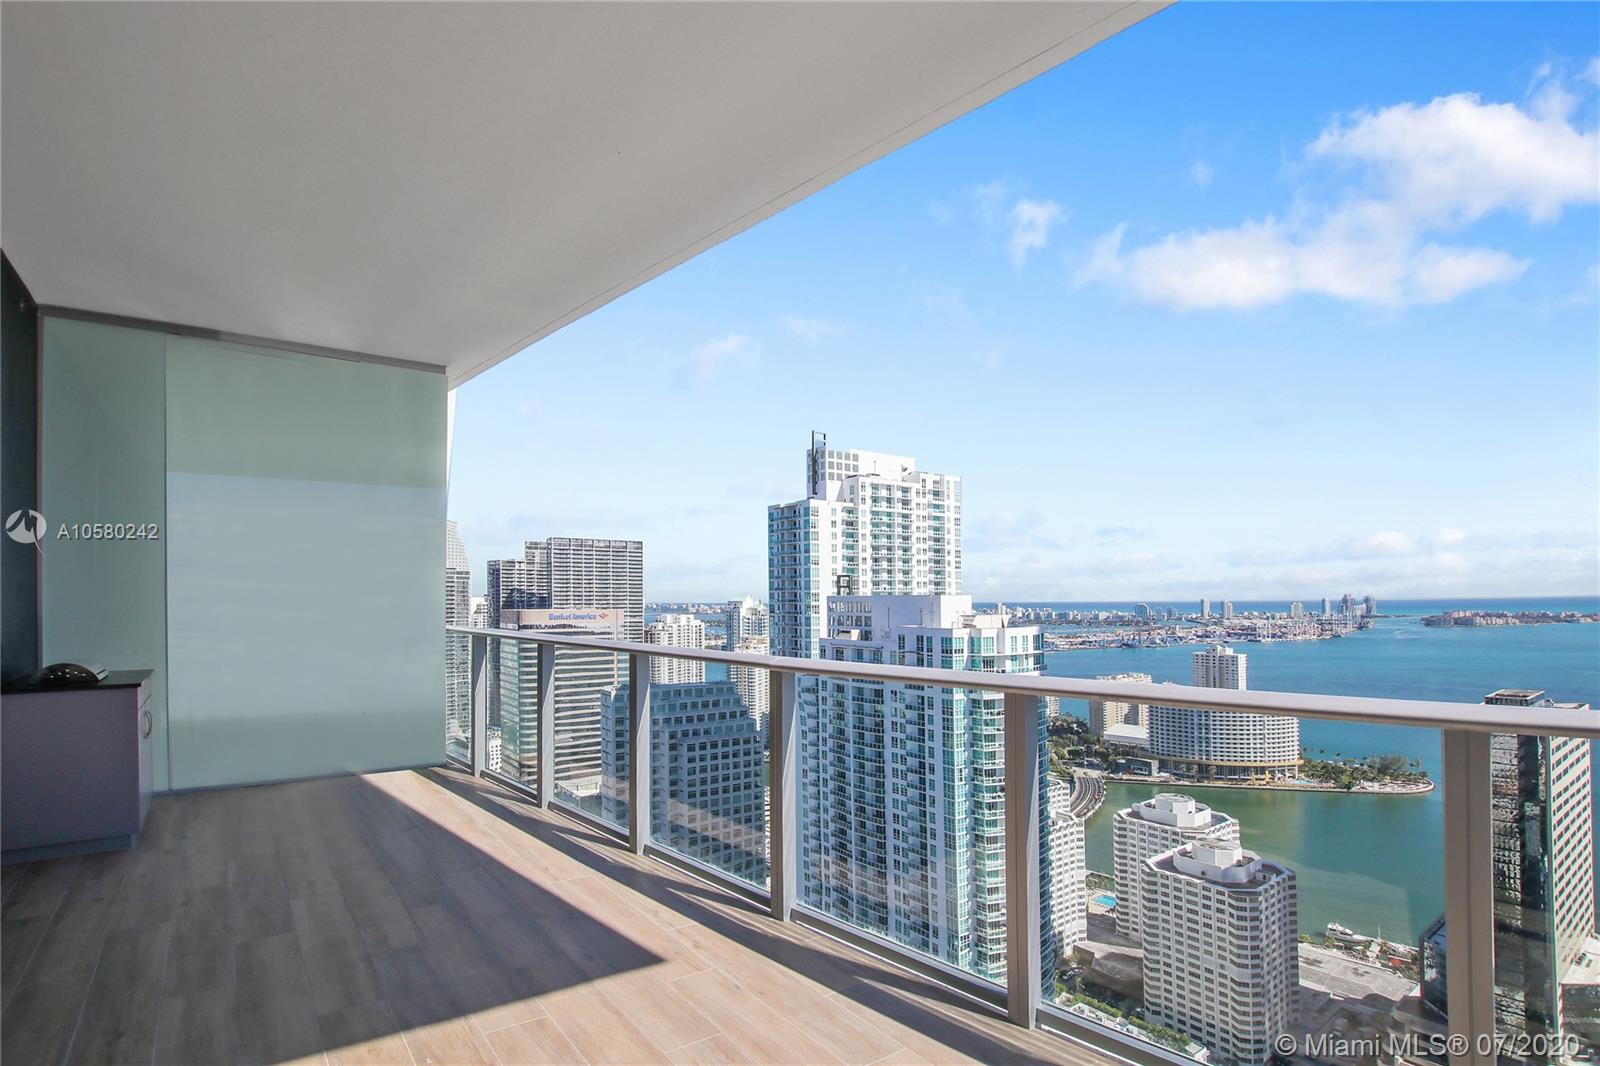 "Brickell 1010, new Luxury Urban Living with spectacular amenities for adults & children! Exquisite 47th Fl. 3bd + Den, 3bth with 180 degrees of Bay, Ocean & gorgeous City views, including bedrooms! Private elevator, modern European designer kitchen, bathrooms & finishes, developer upgrades throughout, floor to ceiling windows throughout & summer kitchen. Building offers incomparable amenities, 2 Pools (Heated & Rooftop), Basketball, Squash, Arcade, Mini Golf, Bowling, Jogging Track, Gym, Spa, Social Room, Movie Theater, Business Center, ""THE CLUB AT 1010"" on the 13th floor w/ parent/child pairing wristband system. Steps from Brickell City center, Mary Brickell Village."